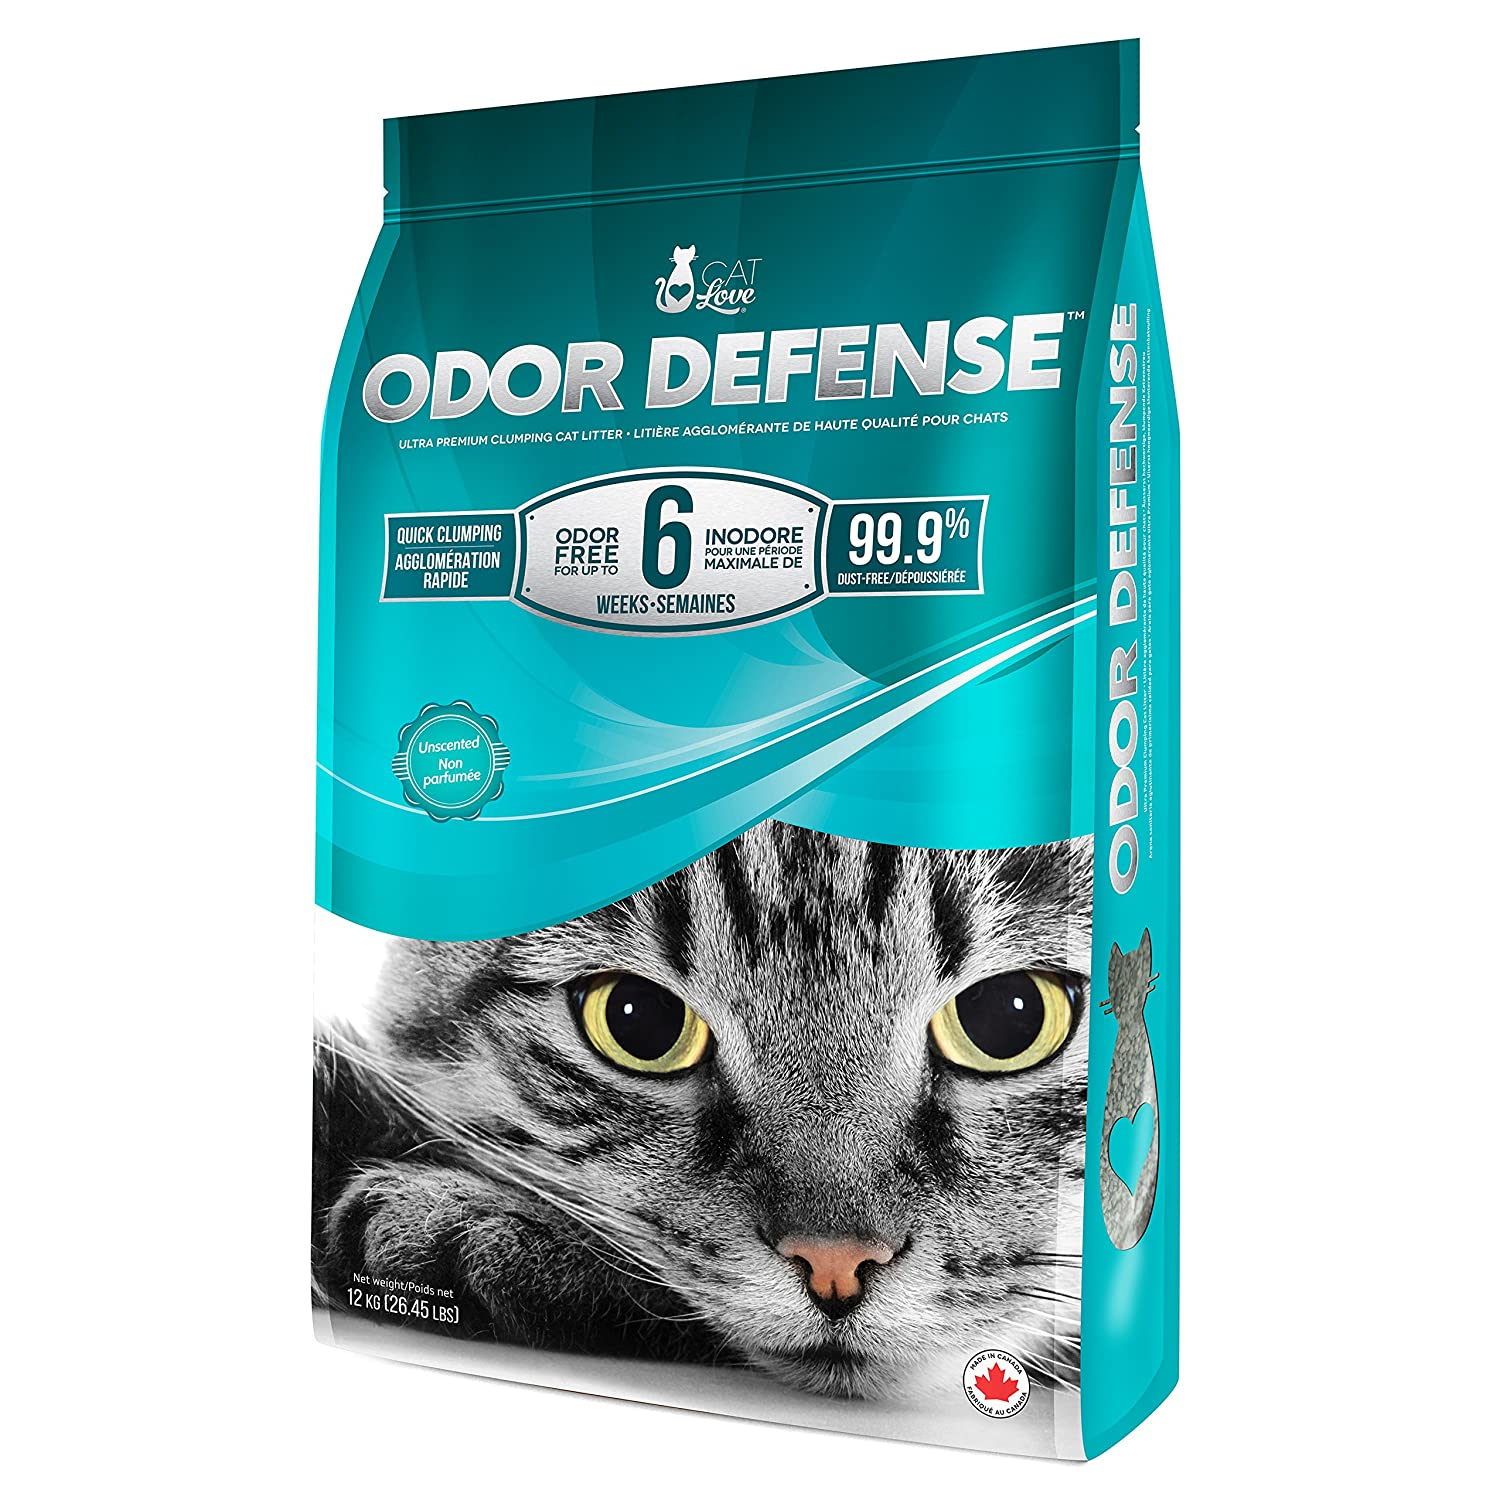 Cat Love Unscented Premium Clumping Cat Litter, 26.5 lb